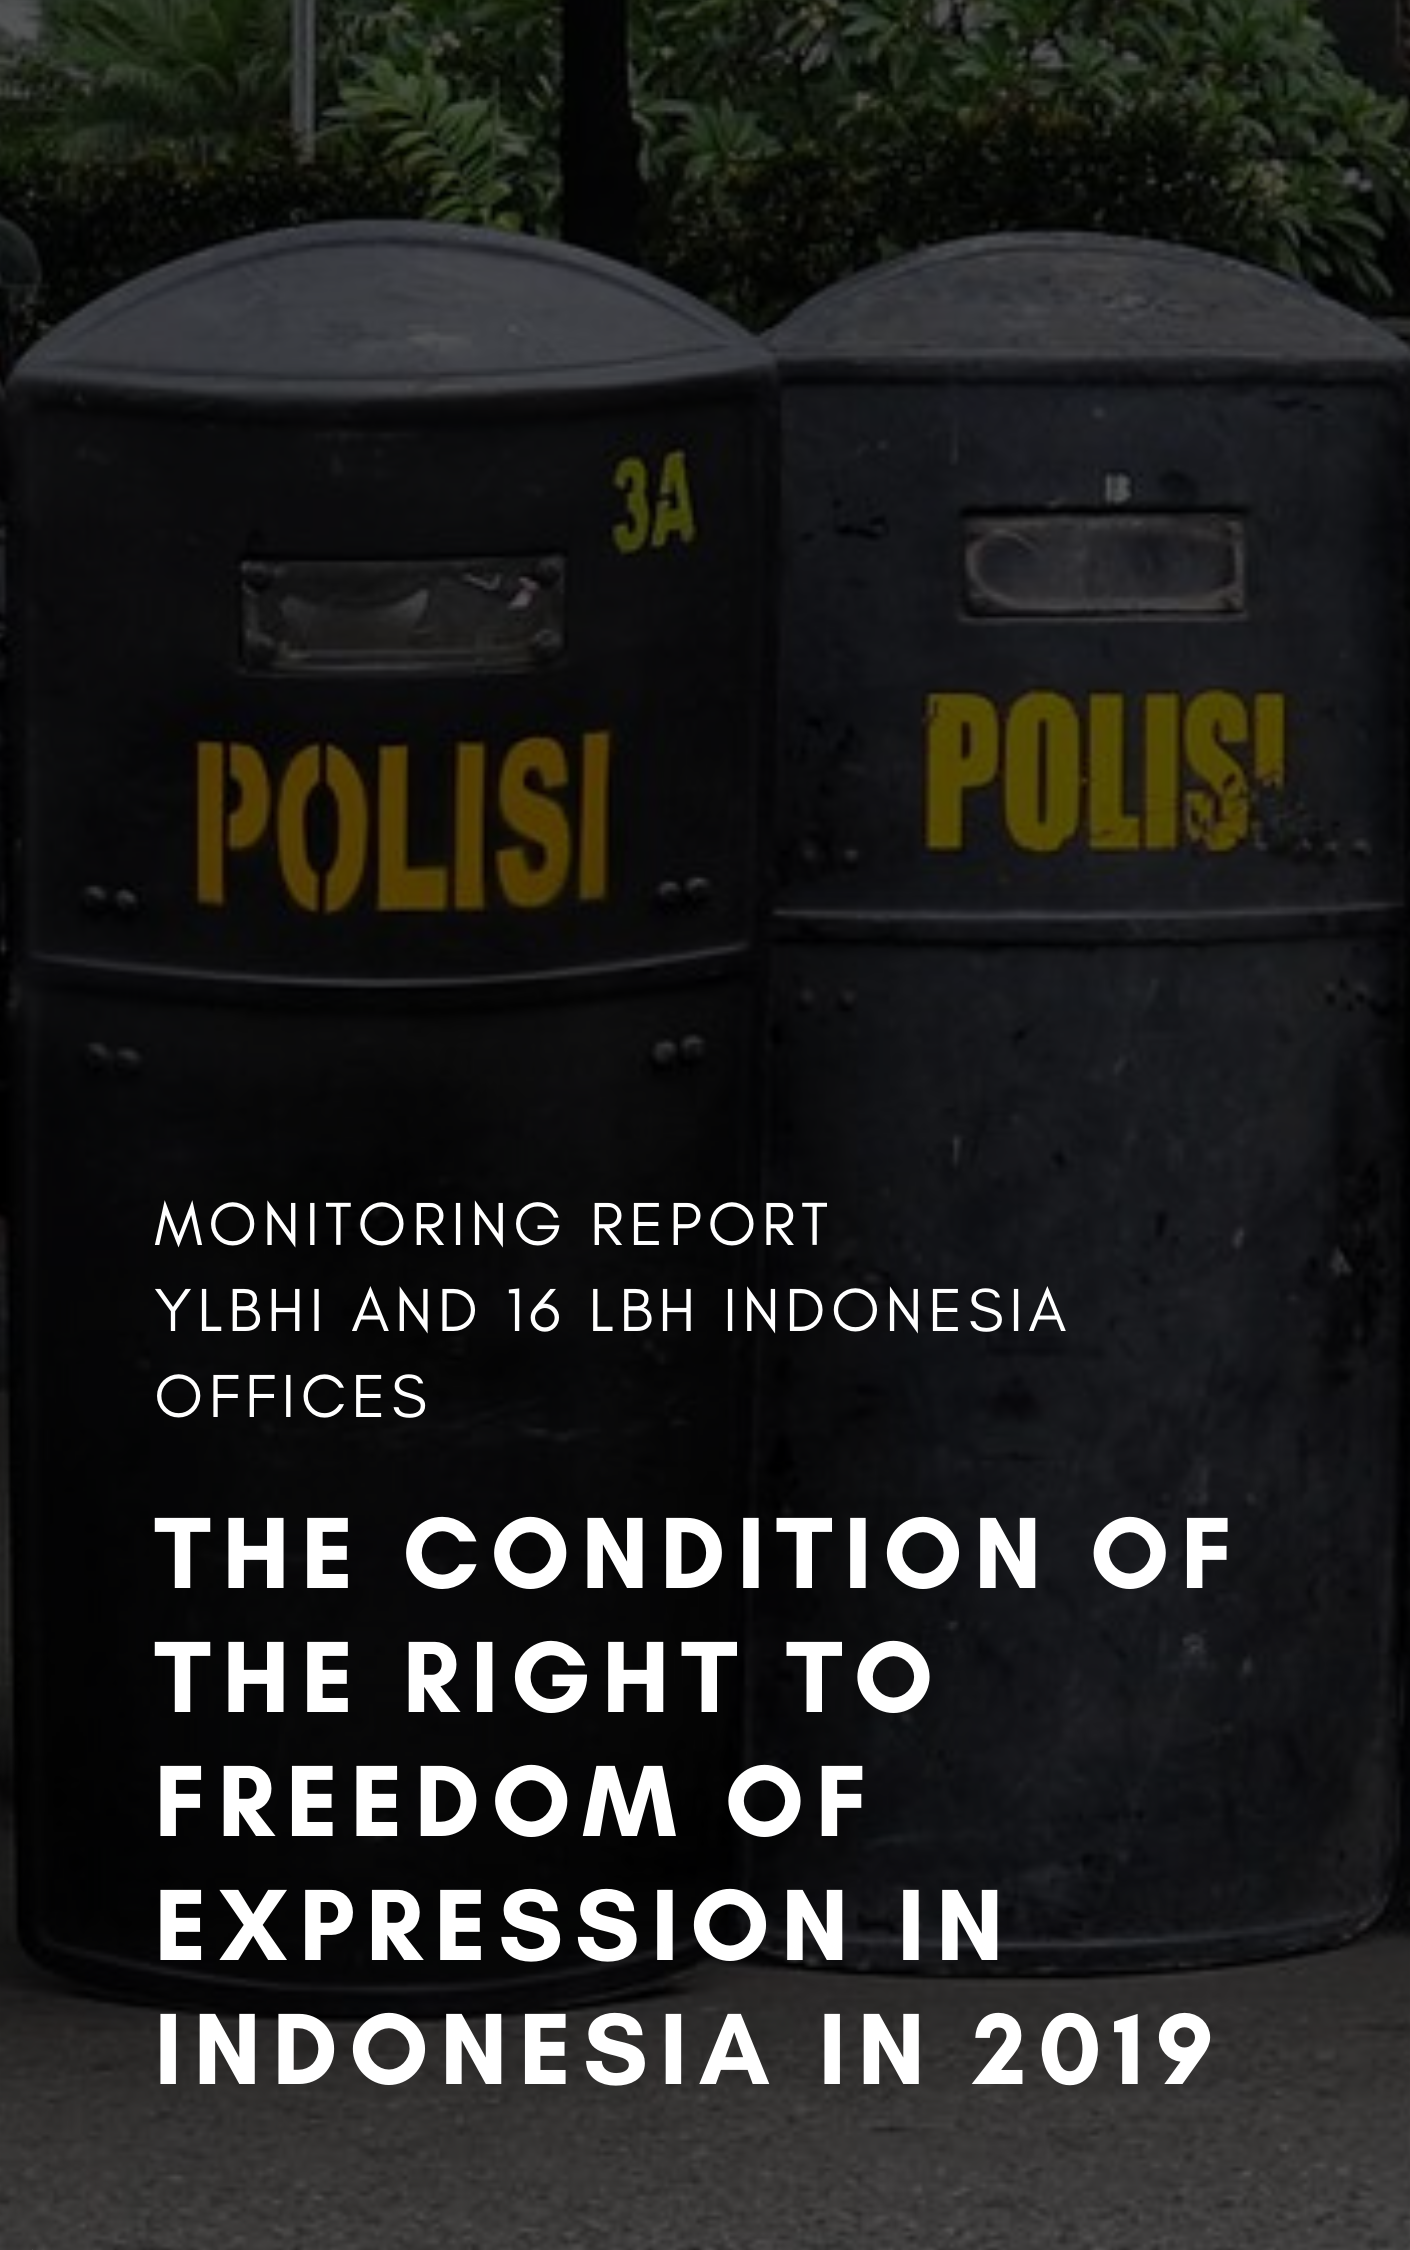 Monitoring Report On The Condition of The Right to Freedom of Expression in Indonesia 2019